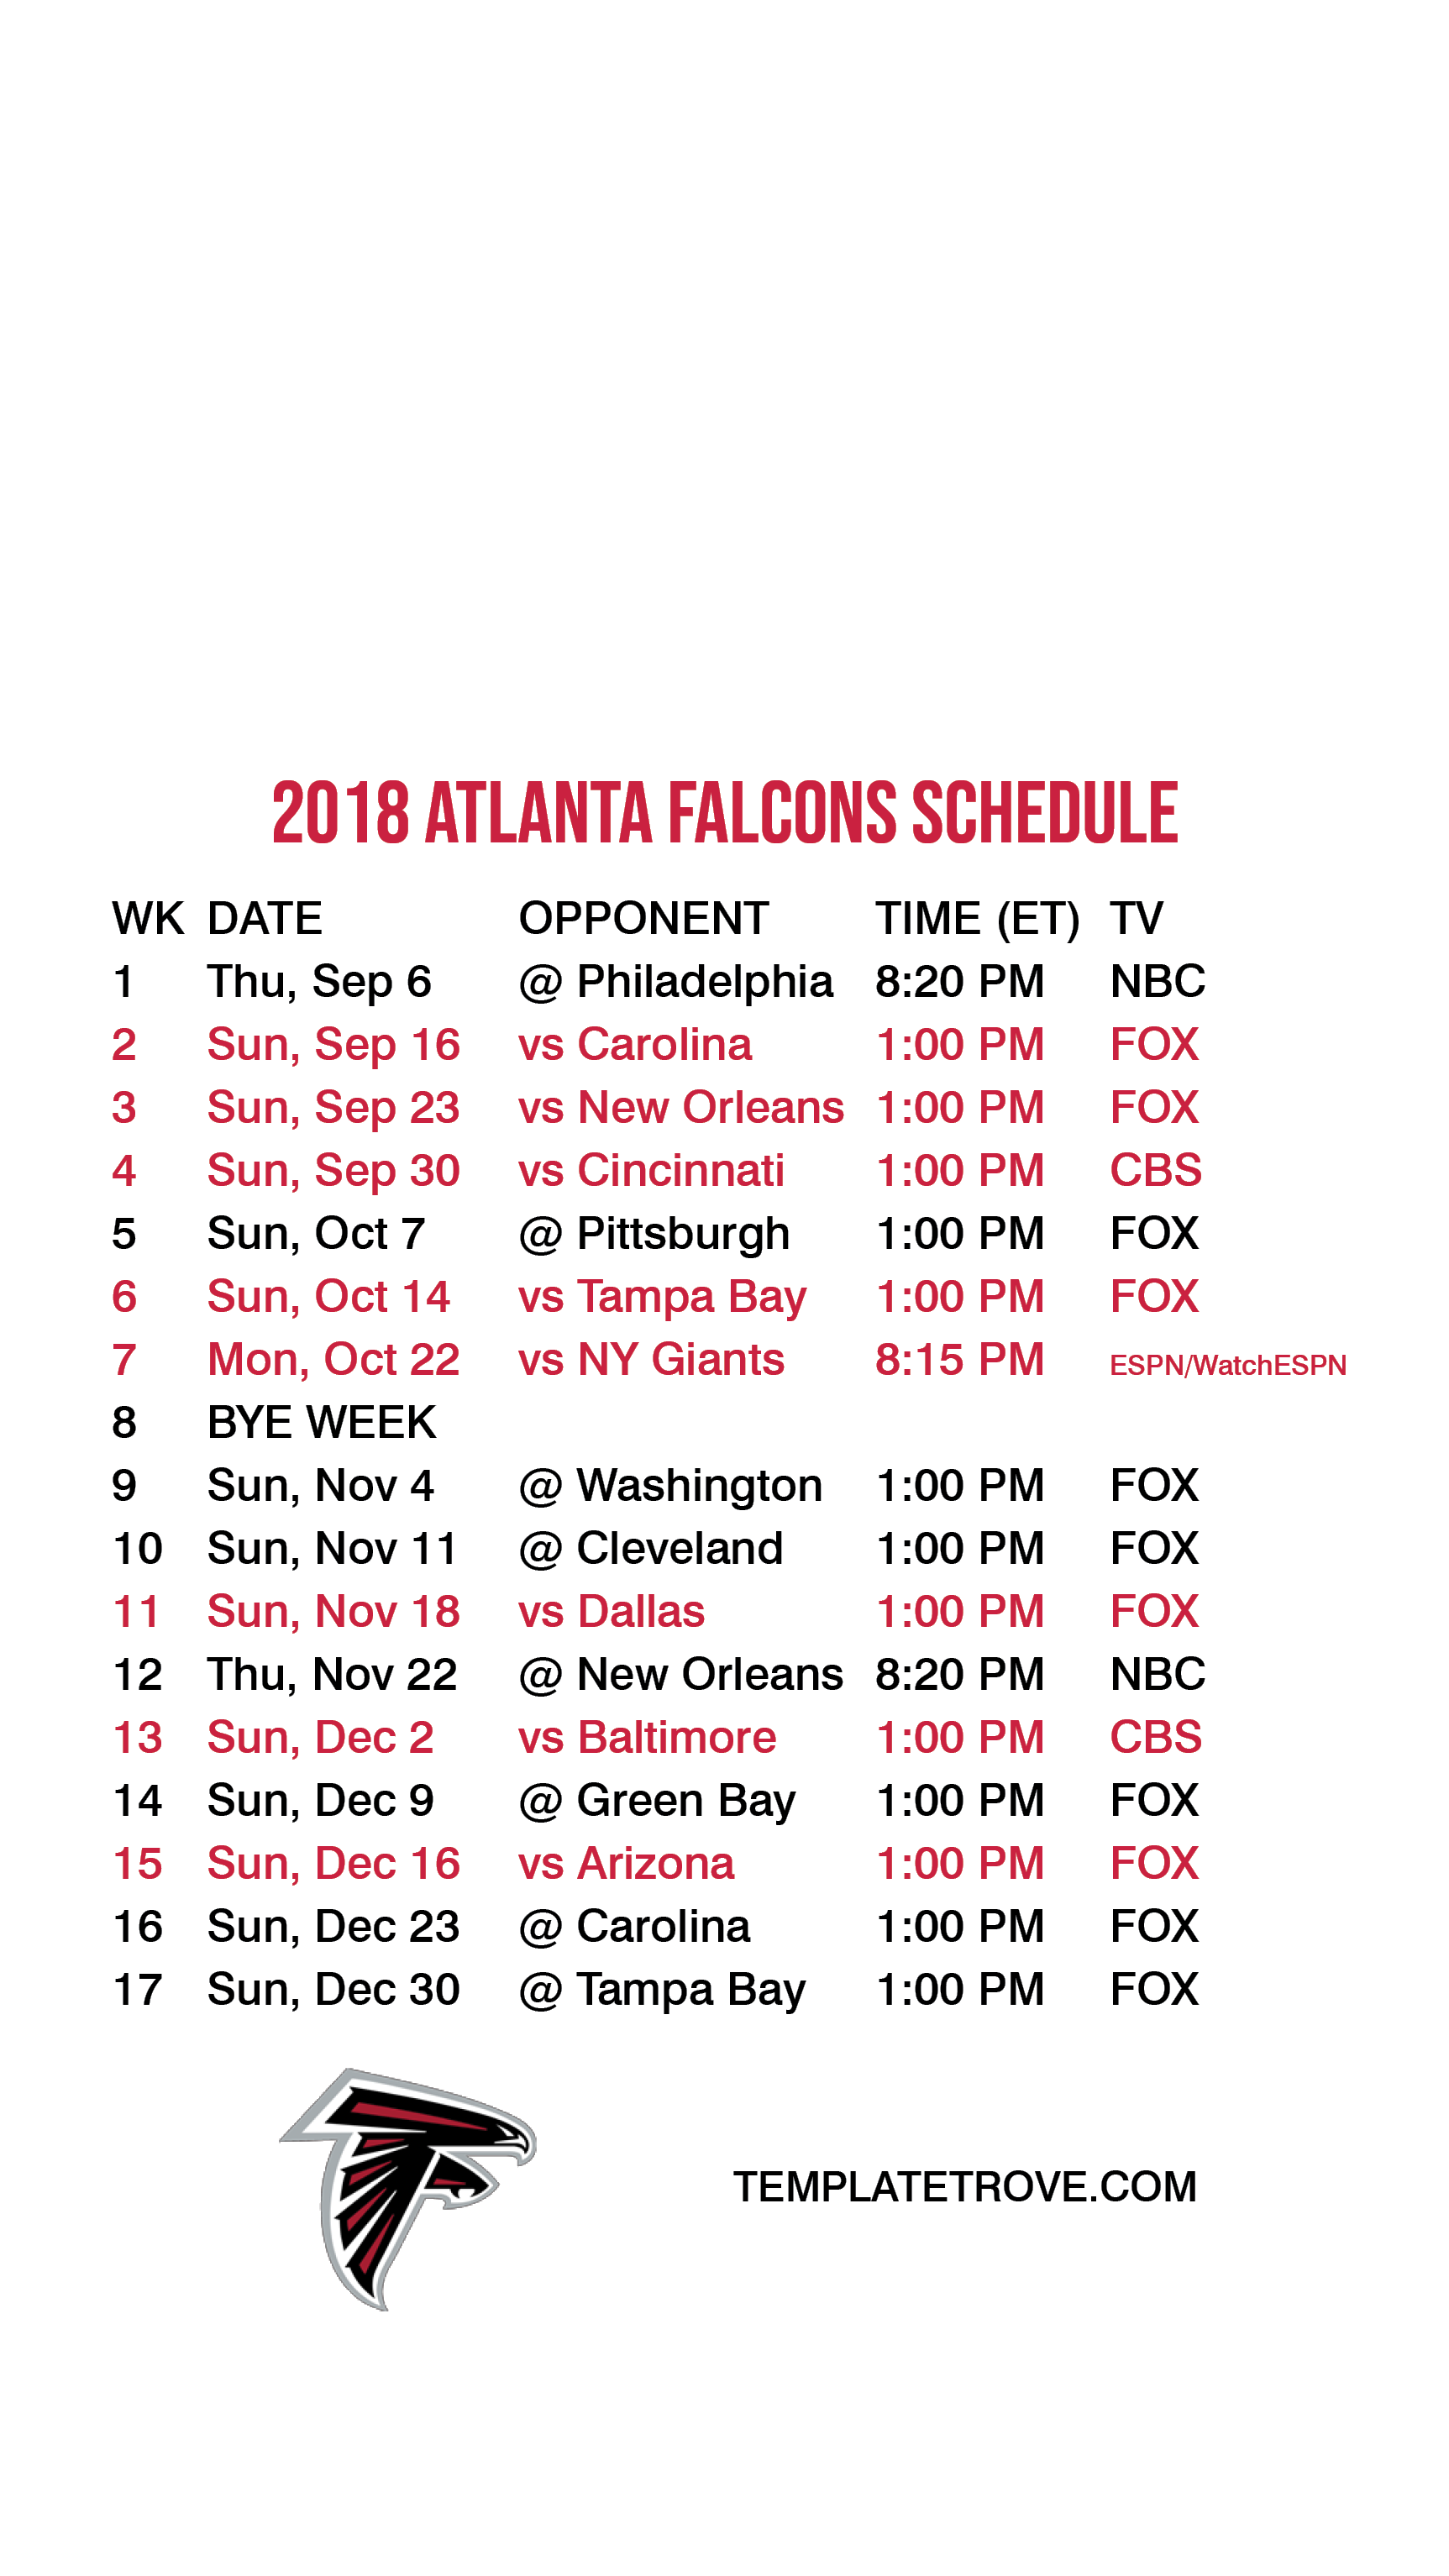 2018-2019 atlanta falcons lock screen schedule for iphone 6-7-8 plus